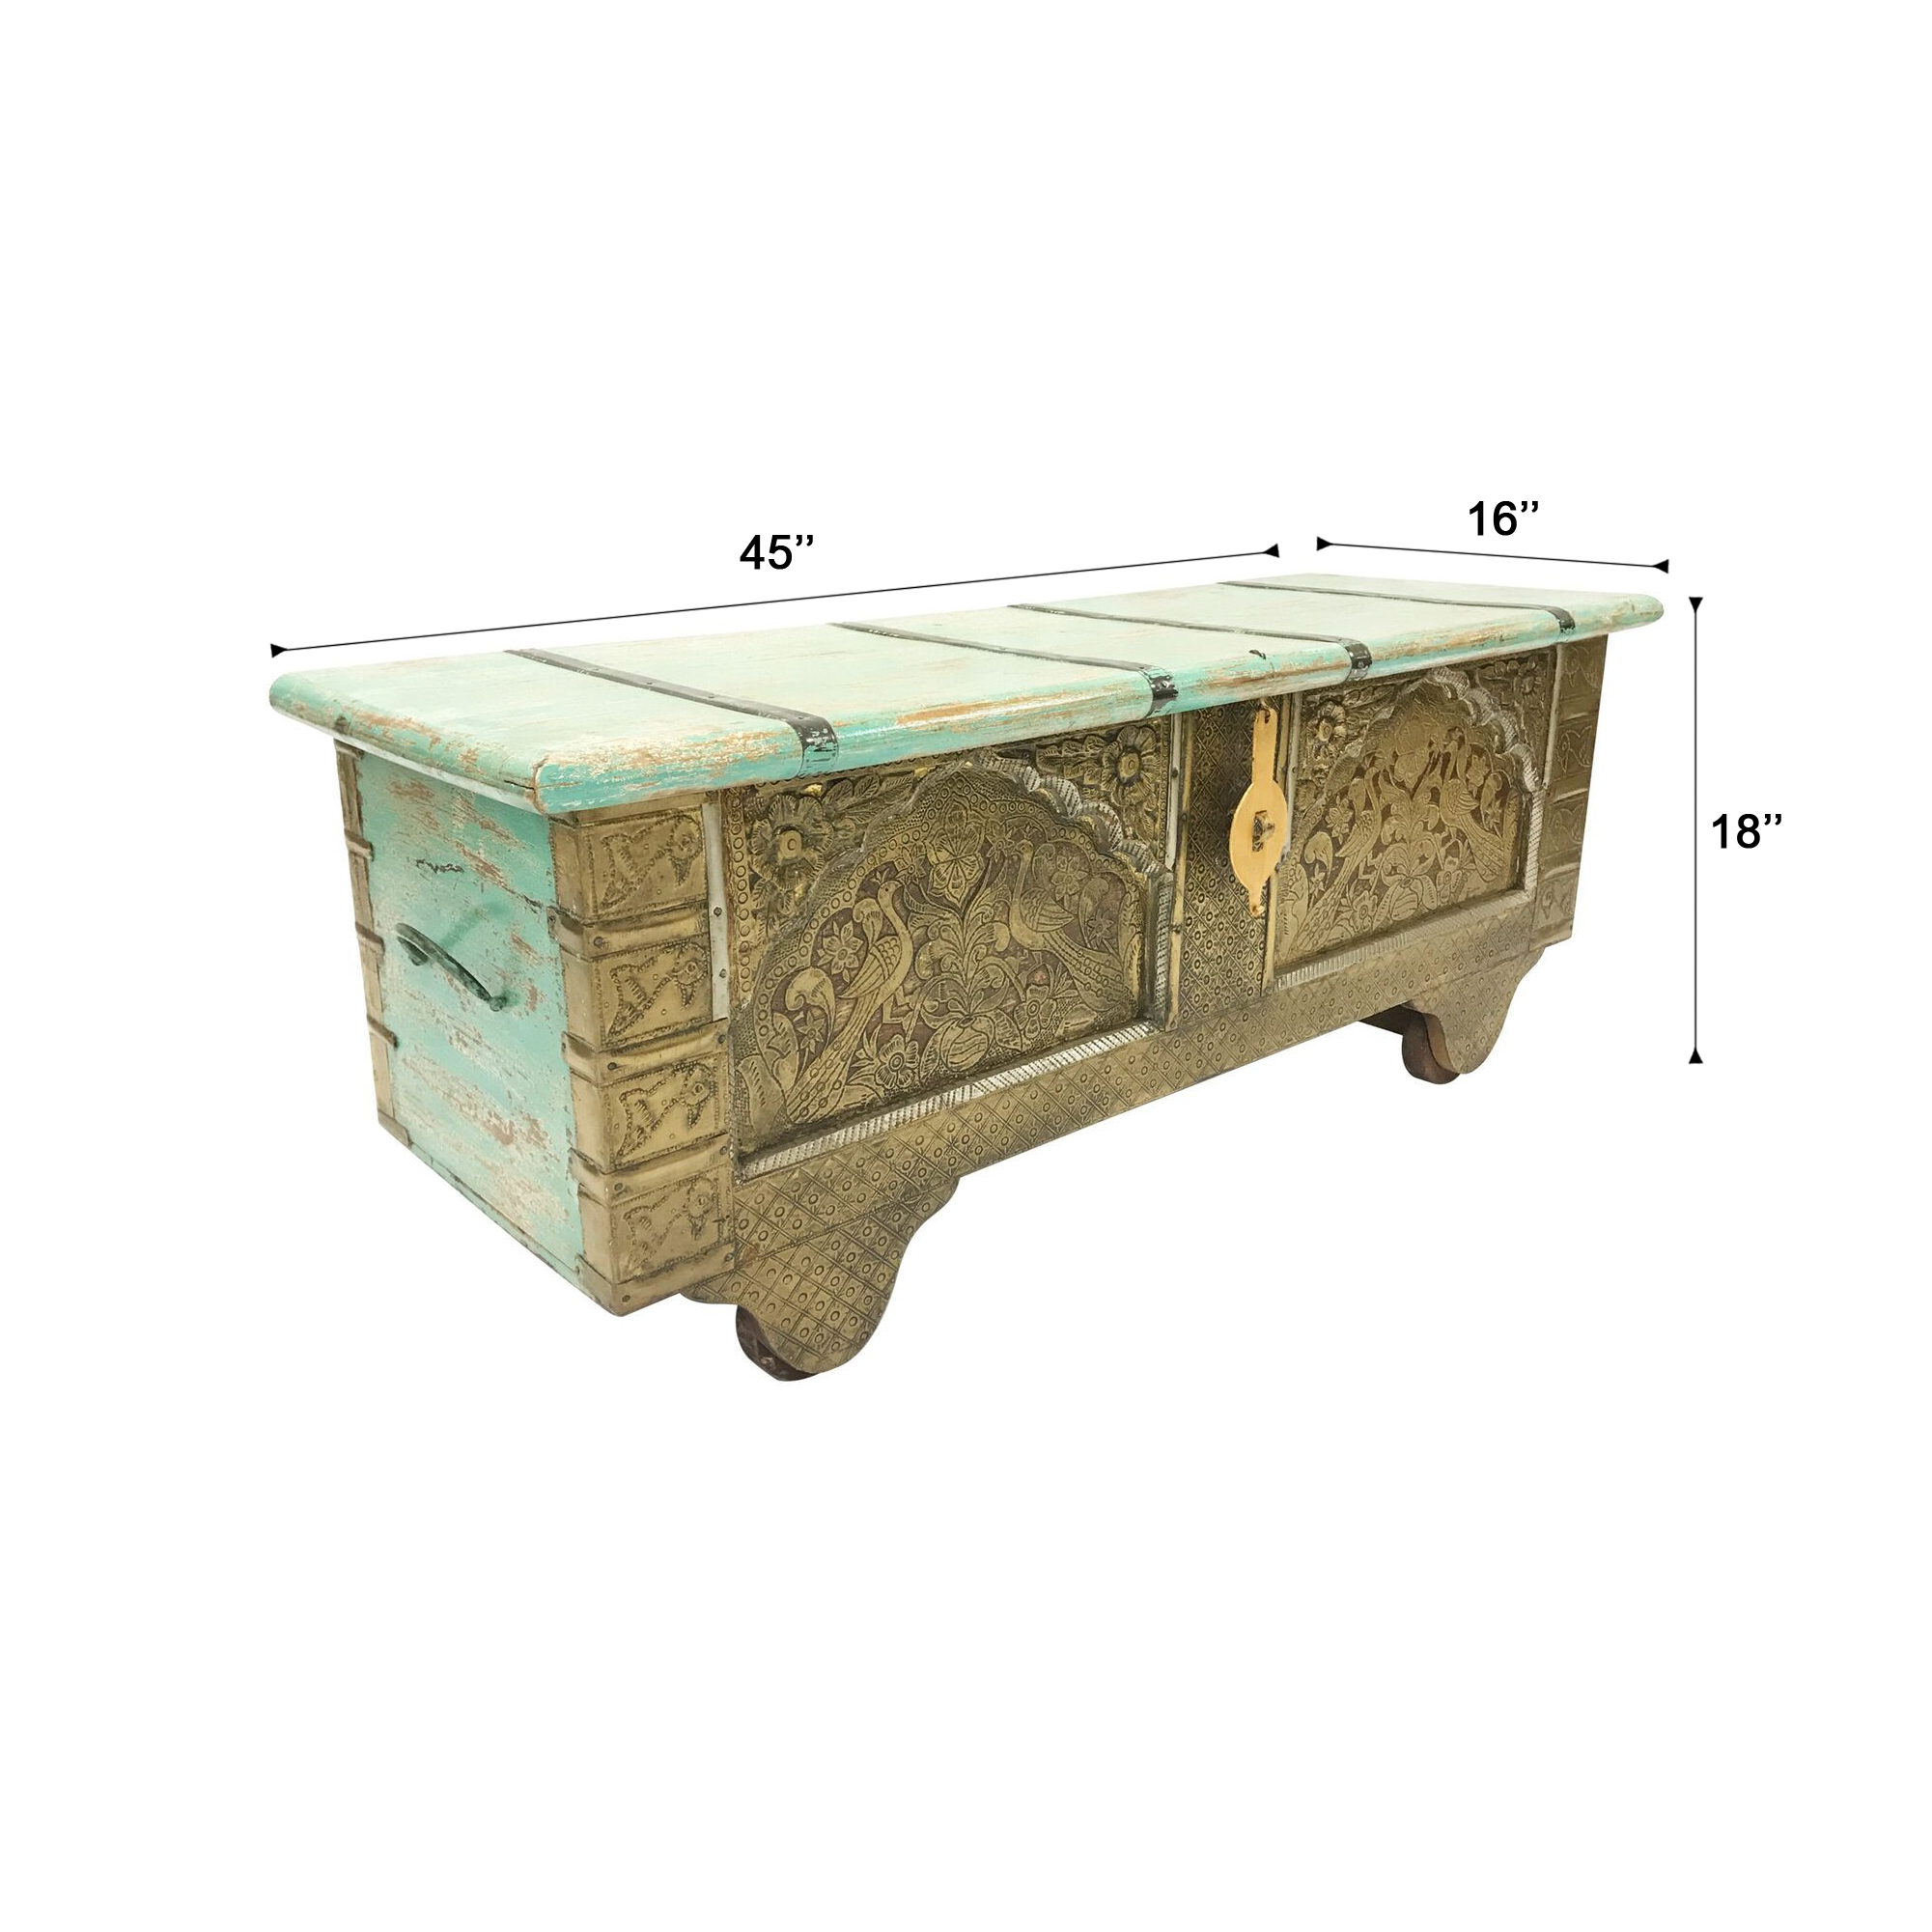 Strange Details About Brass Trim Pistachio Green Reclaimed Wooden Storage Trunk 45 L X 16 W X 18 H Unemploymentrelief Wooden Chair Designs For Living Room Unemploymentrelieforg